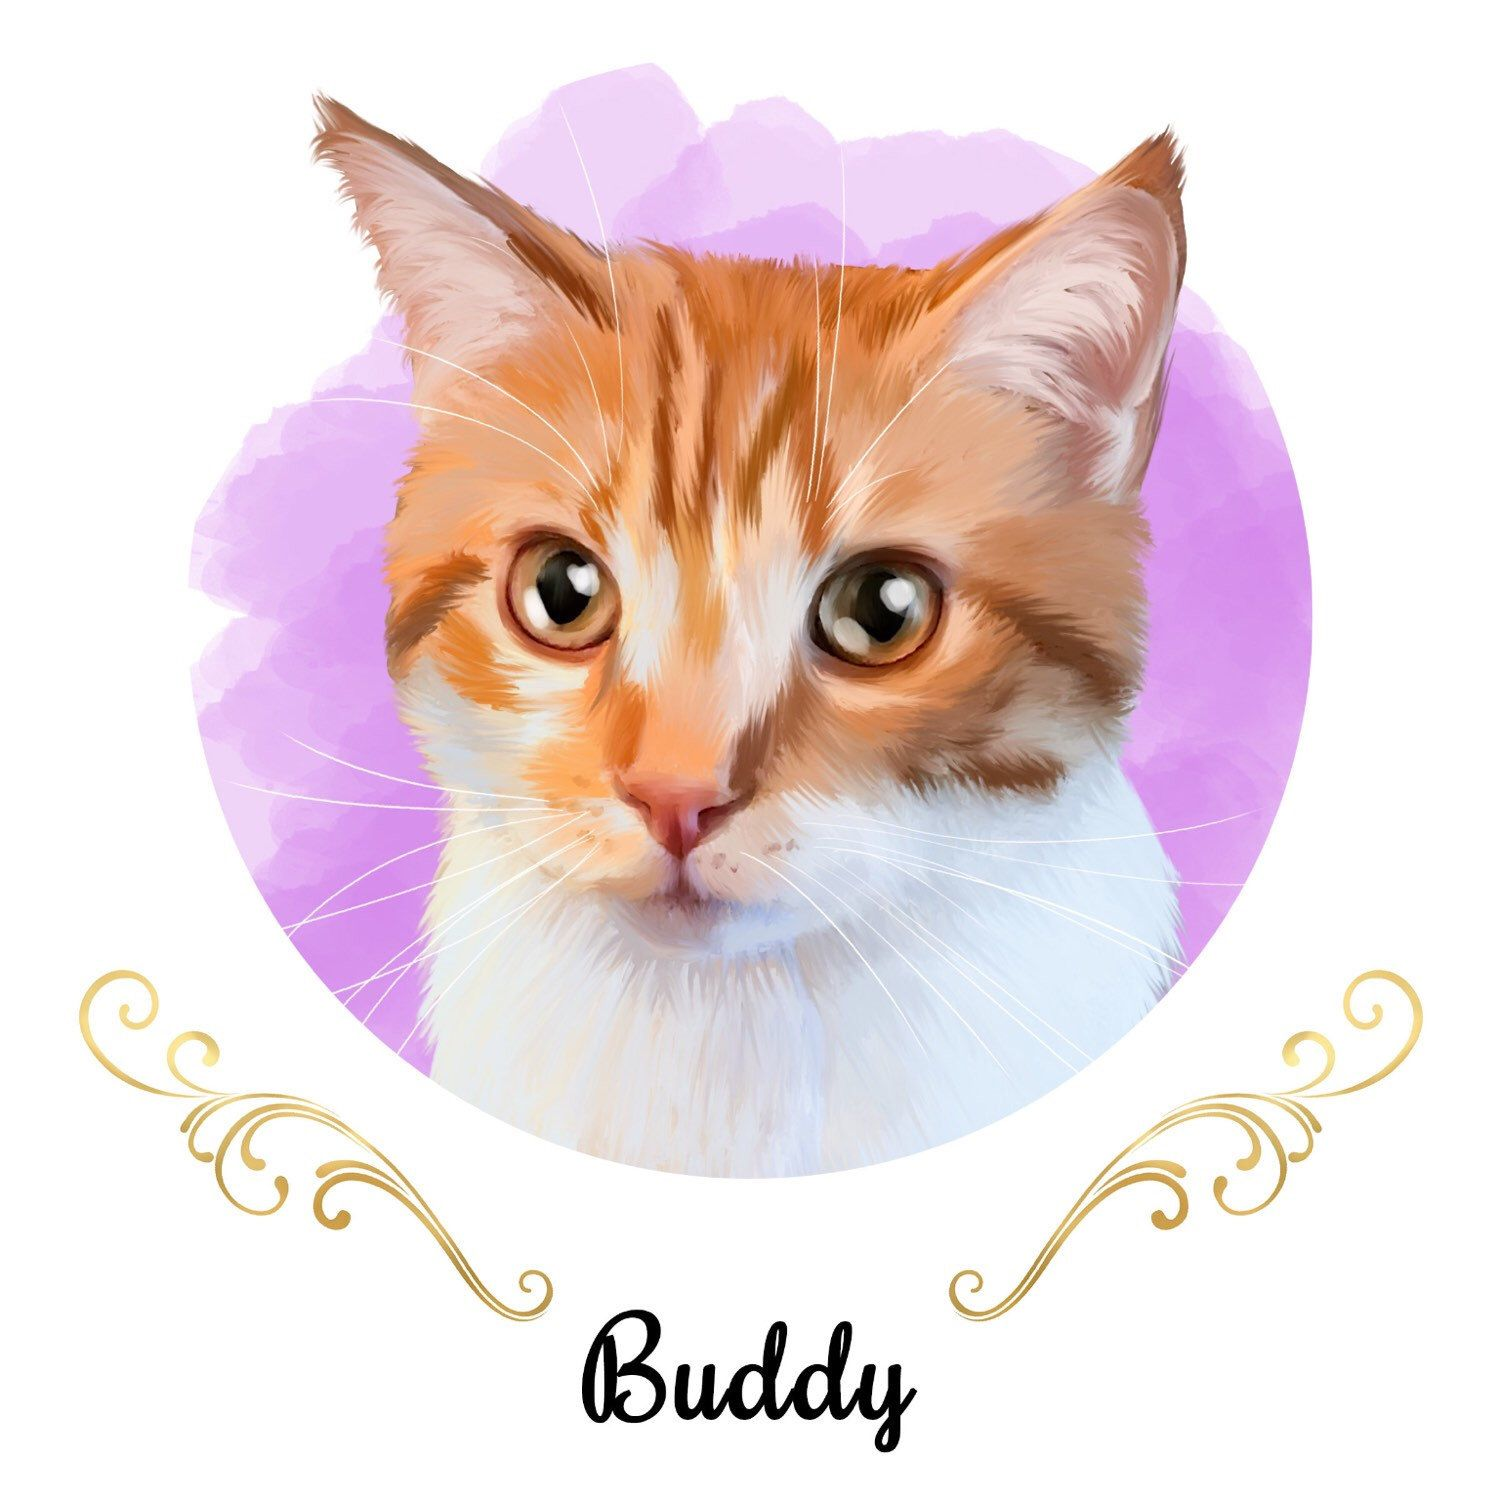 Custom Cat Portrait Gift For Lover New Owner Birthday Wall Art Home Decor Kitten Kitty Catlover